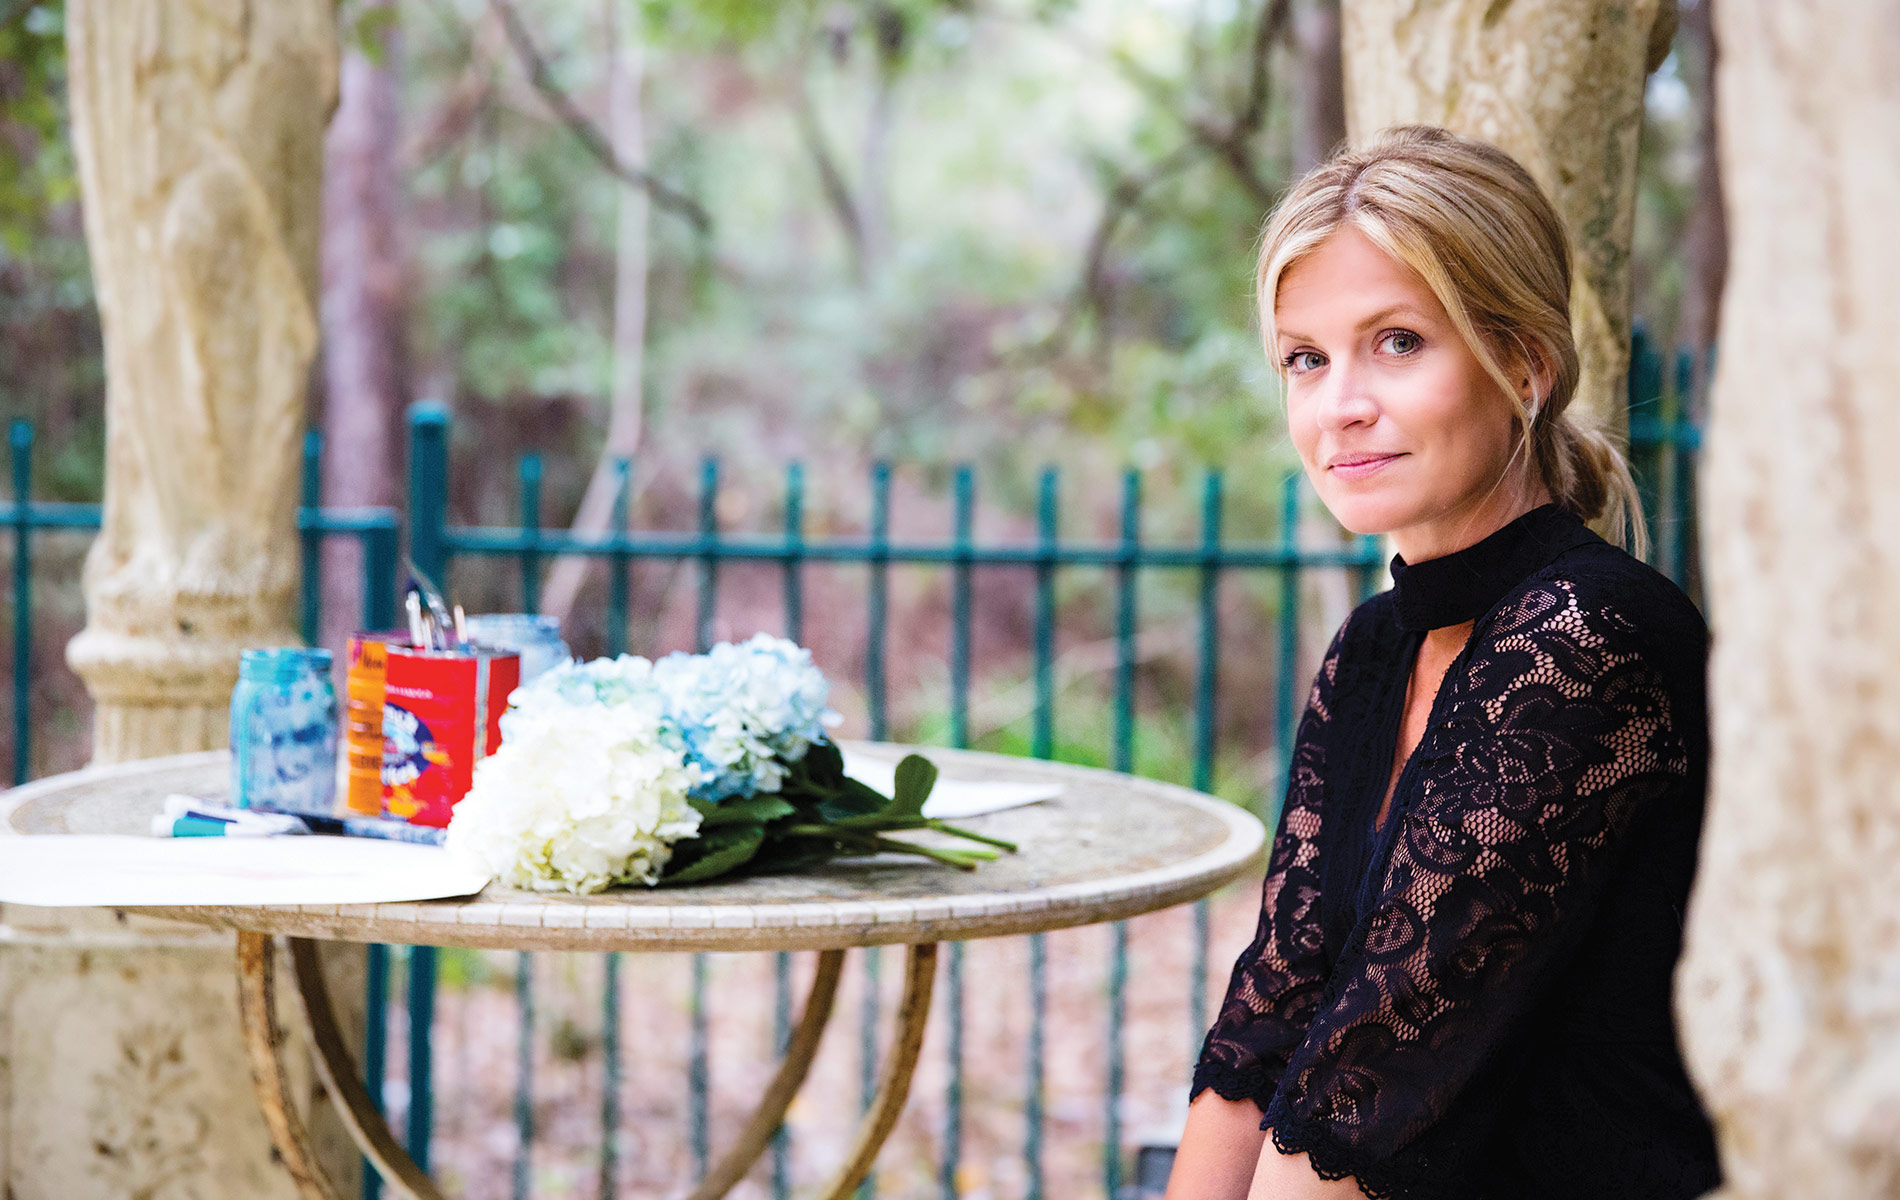 Artist Jessica Hathorn sitting in nature by a table that's topped with flowers and paint